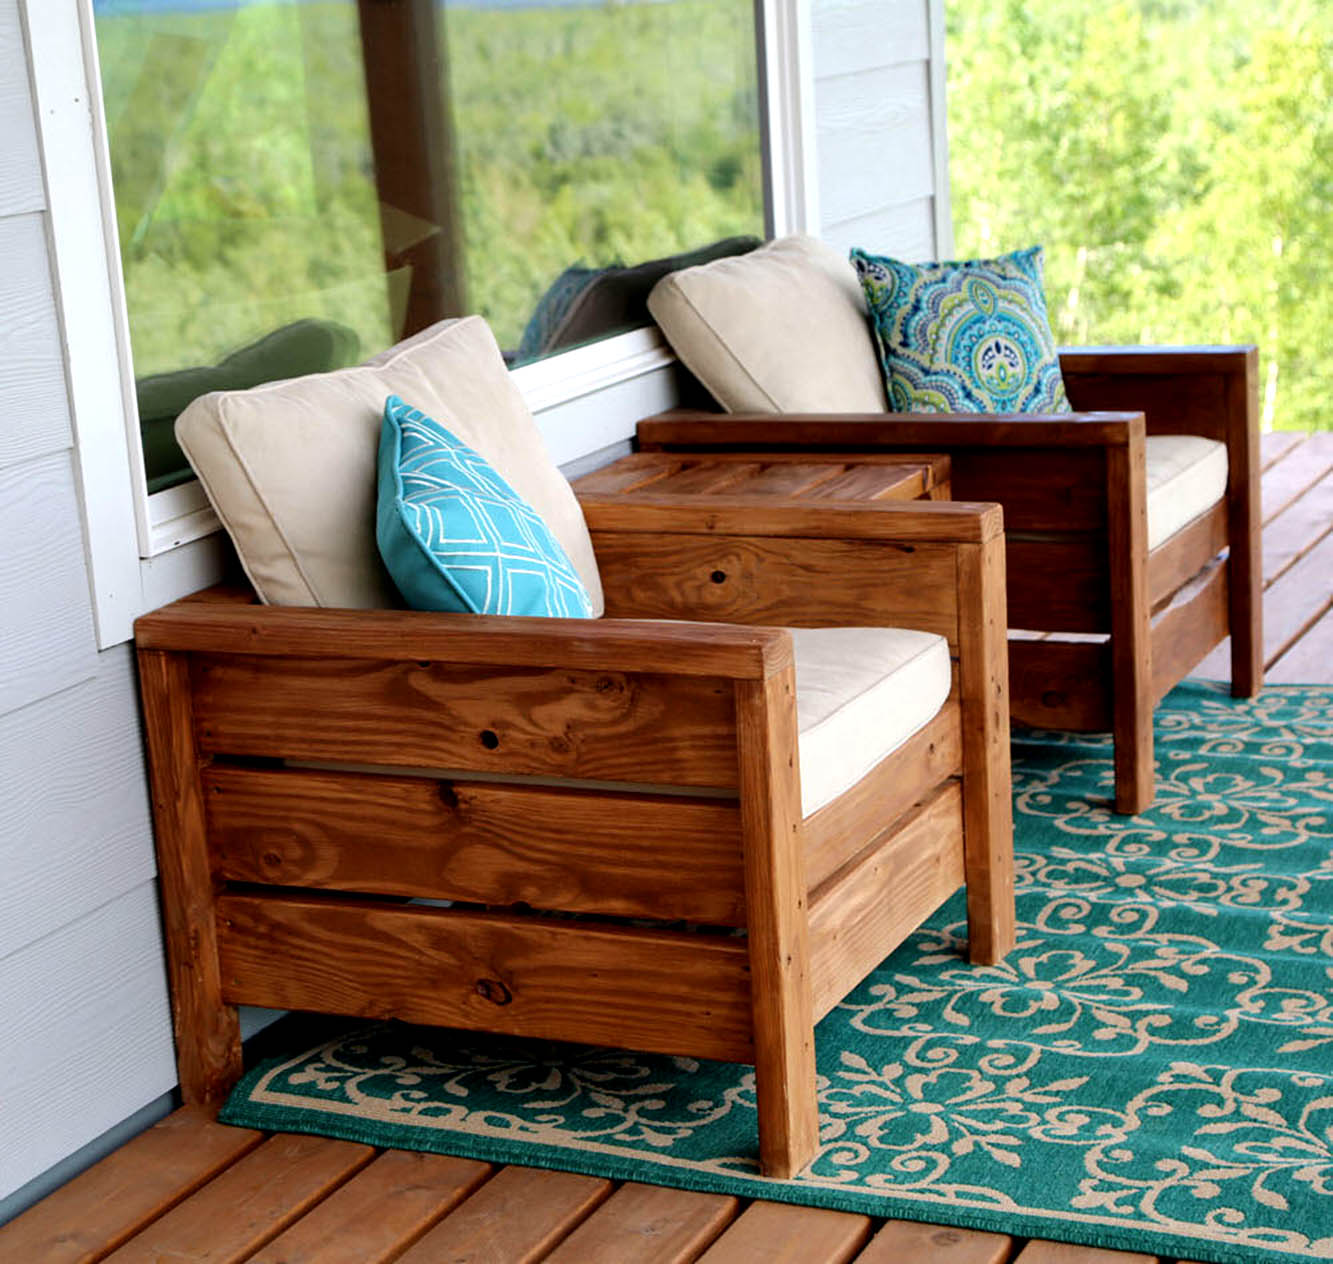 Homemade Modern Outdoor Furniture for Patio and Garden Chair plans